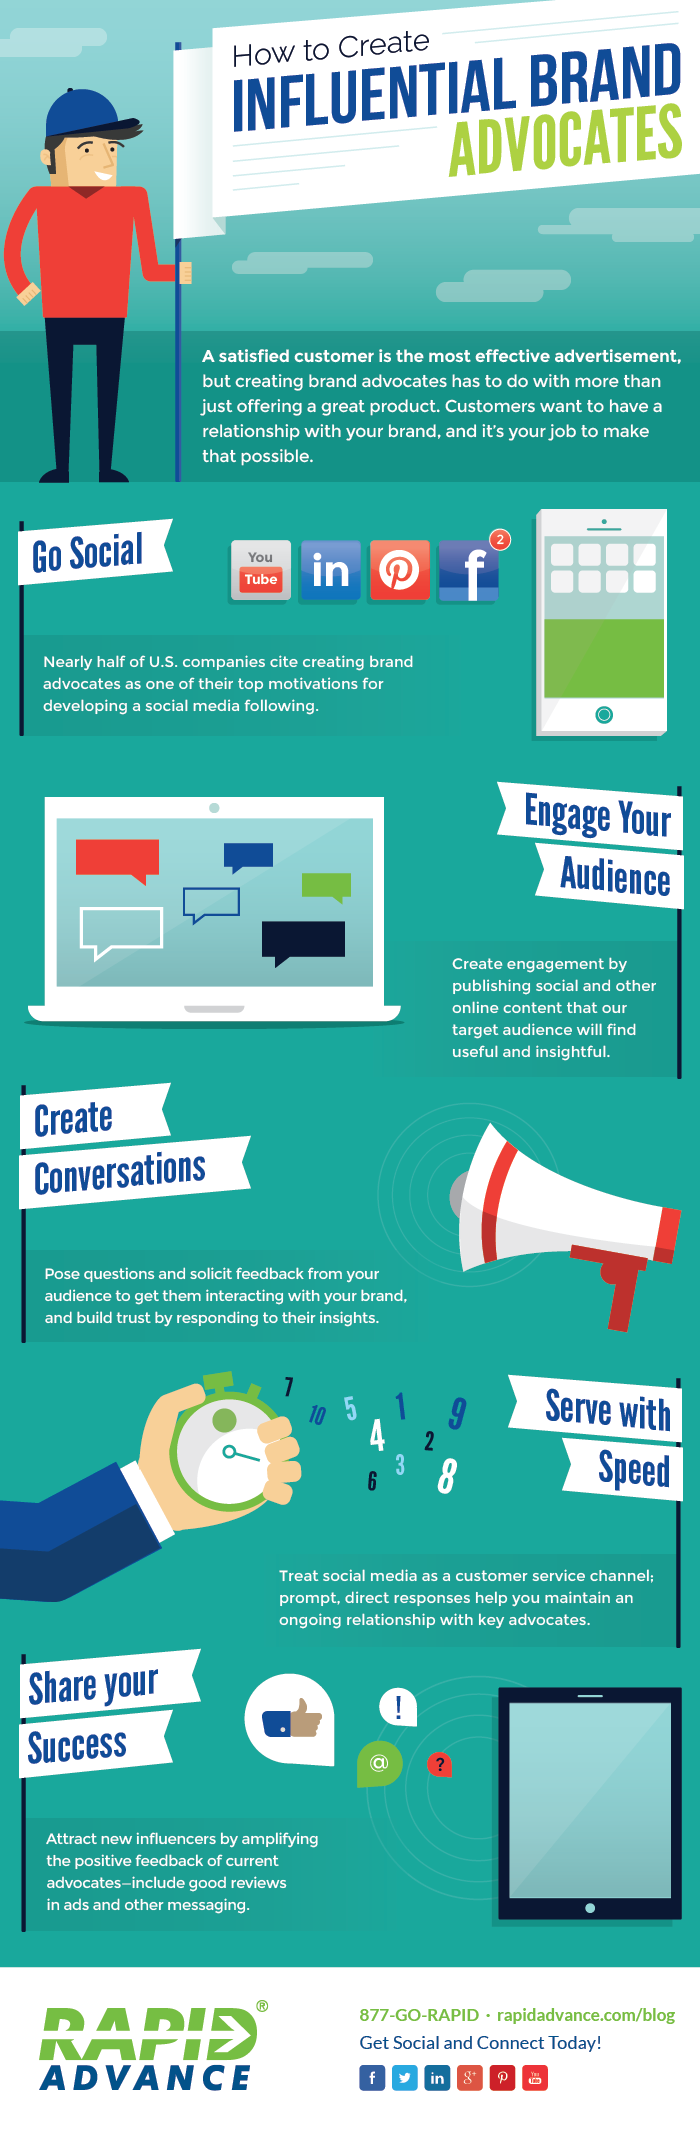 5 tips for creating Influential Brand Advocates for your business - #infographic